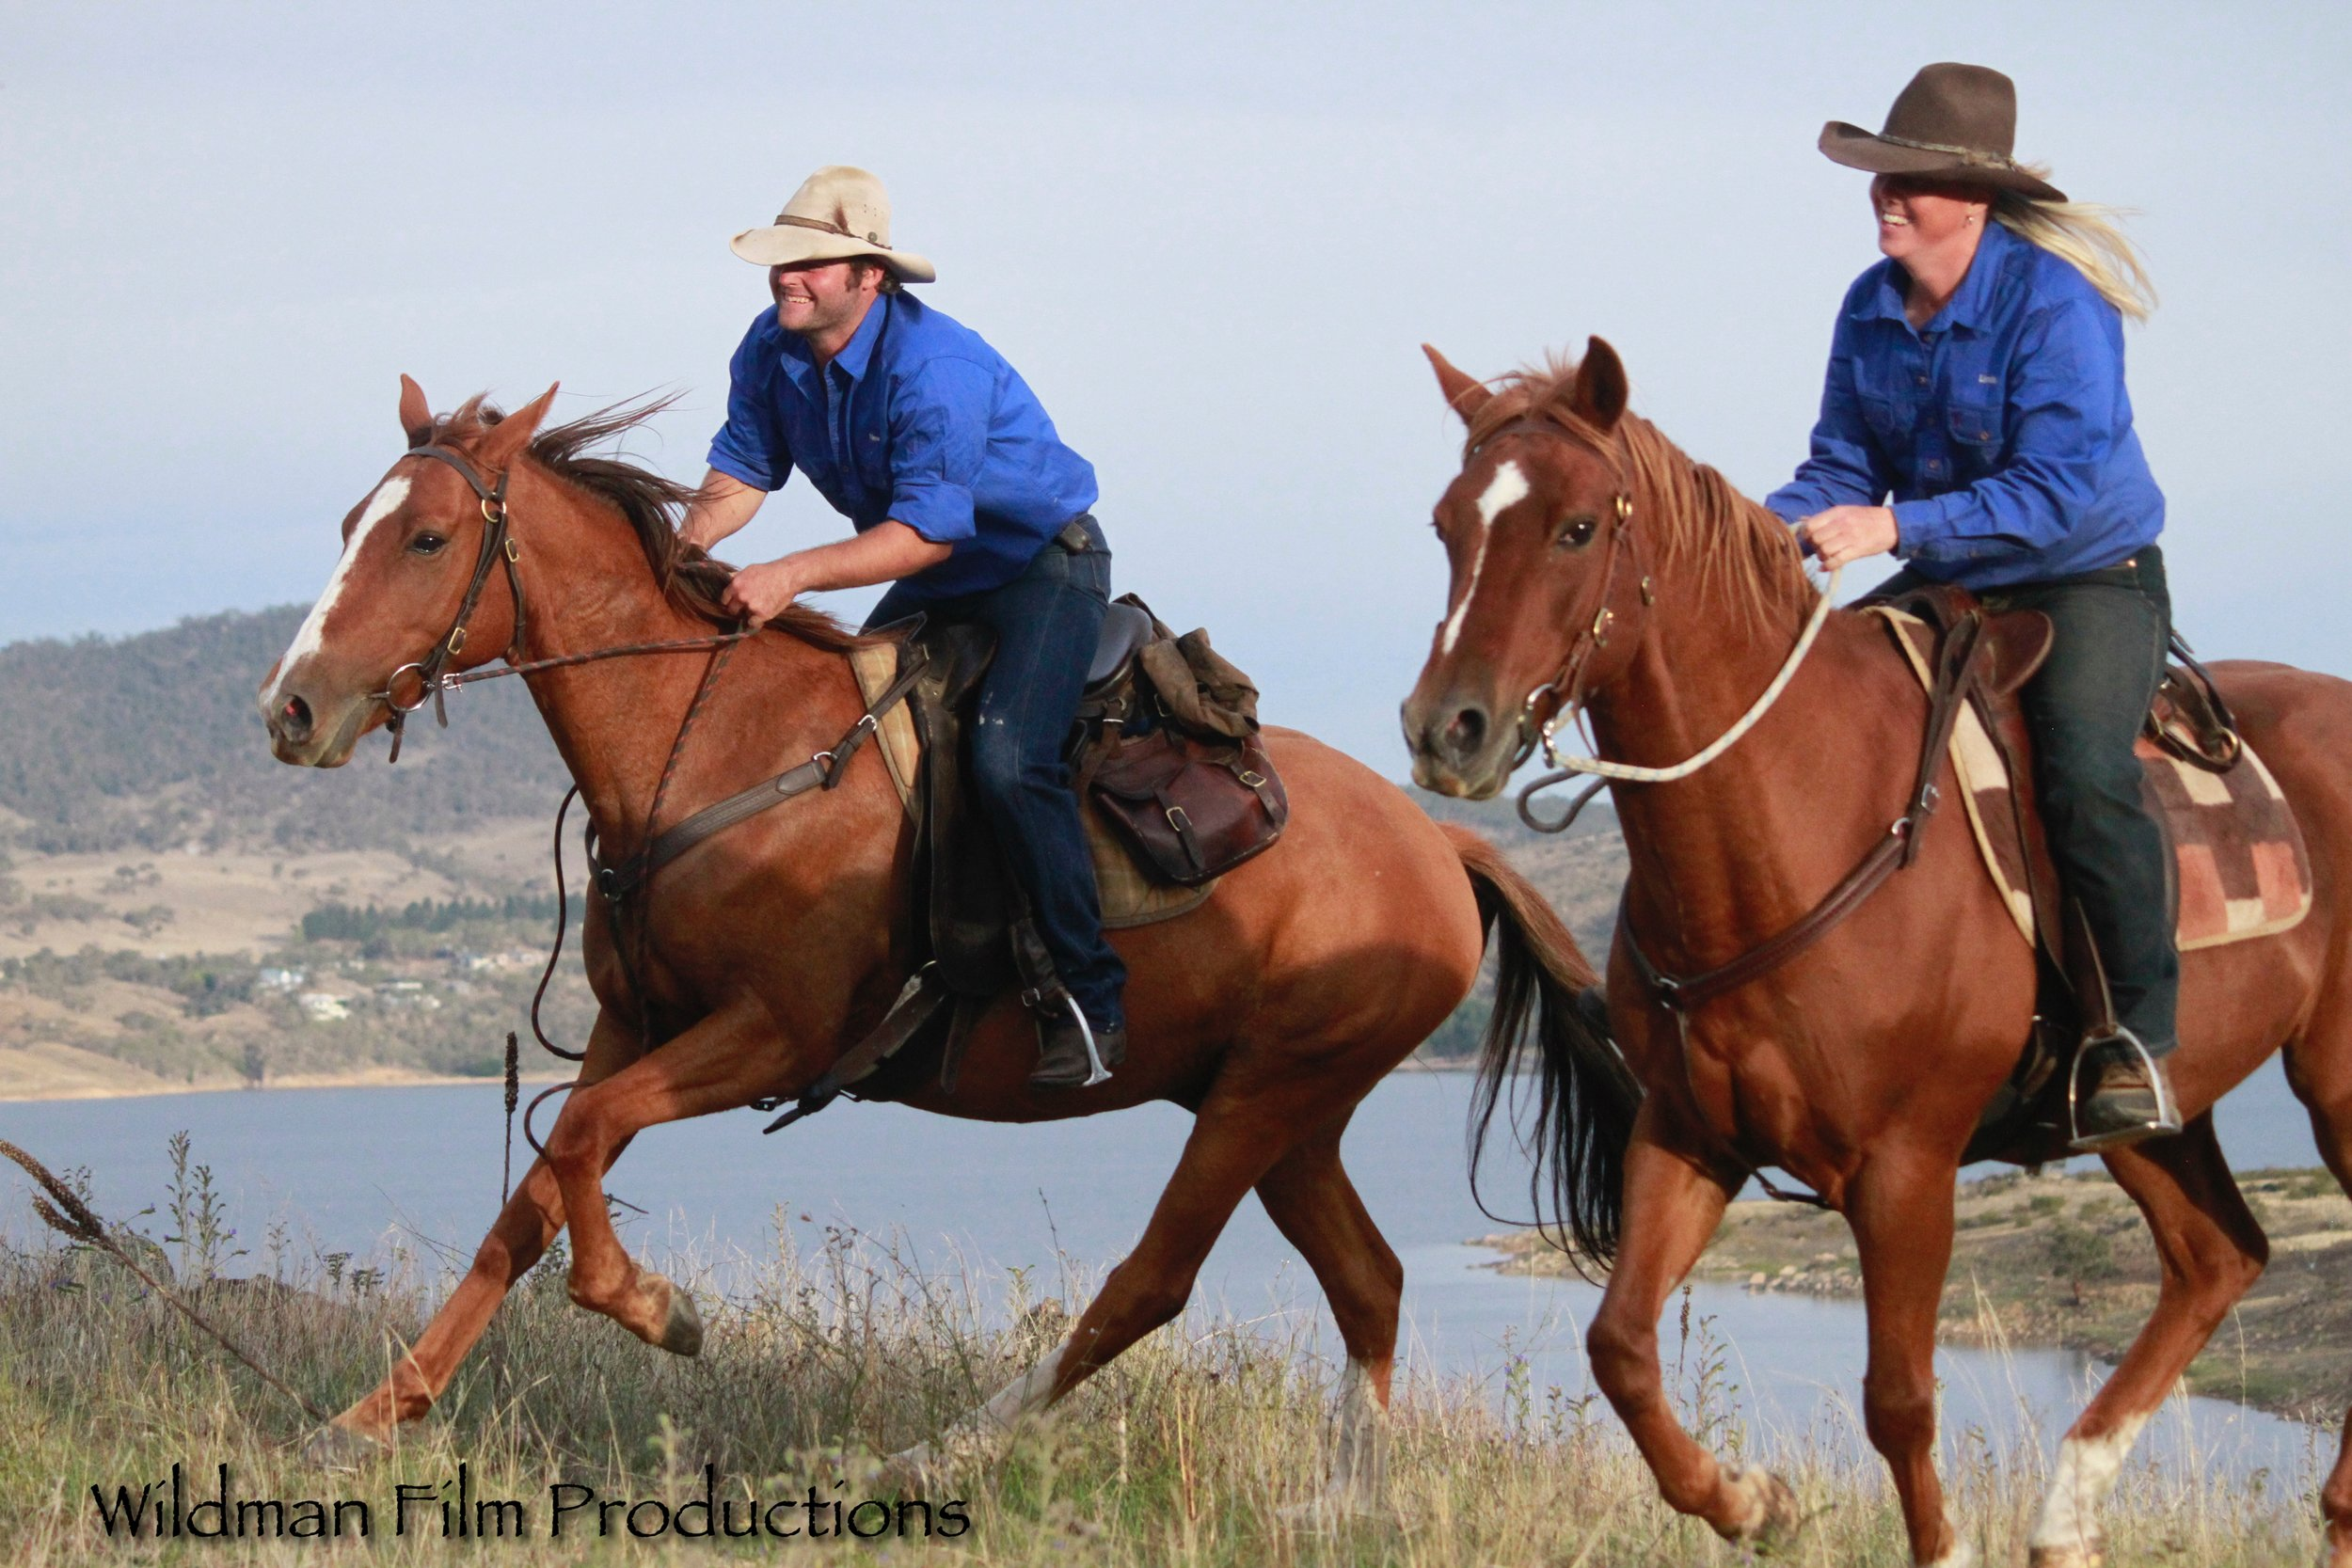 Summon your inner Western side, and enjoy two hours of horse riding!